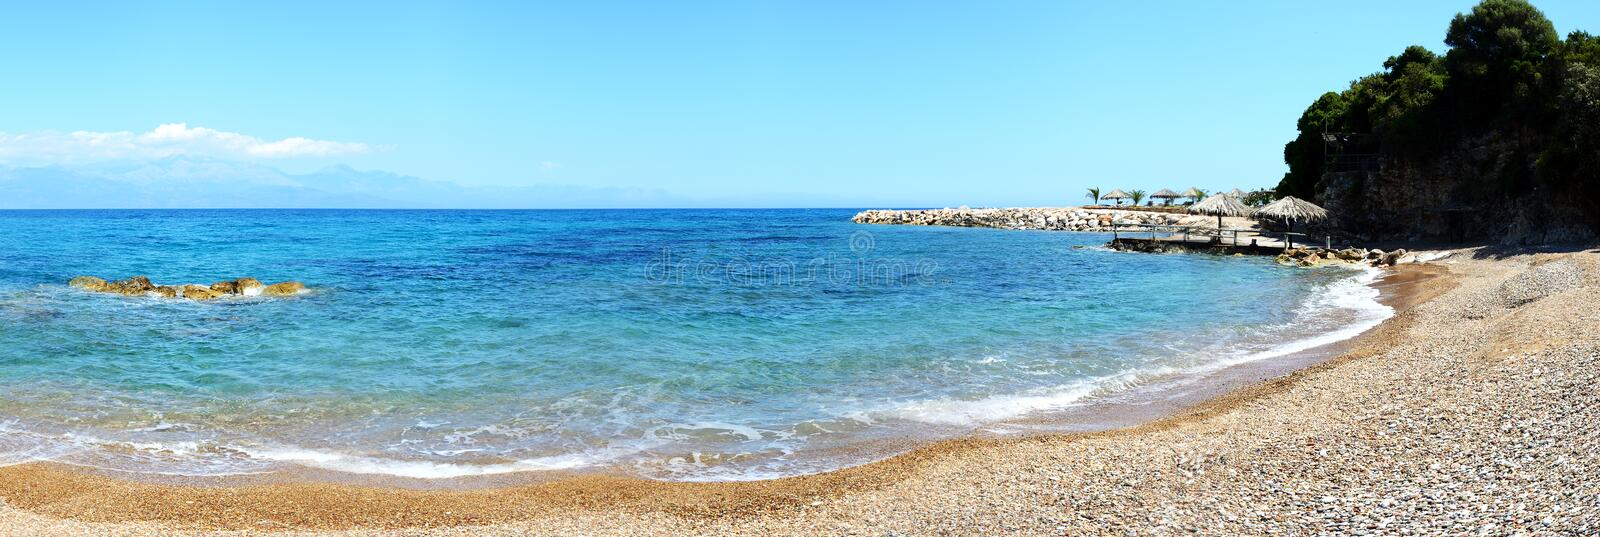 The panorama of beach on Ionian Sea at luxury hotel